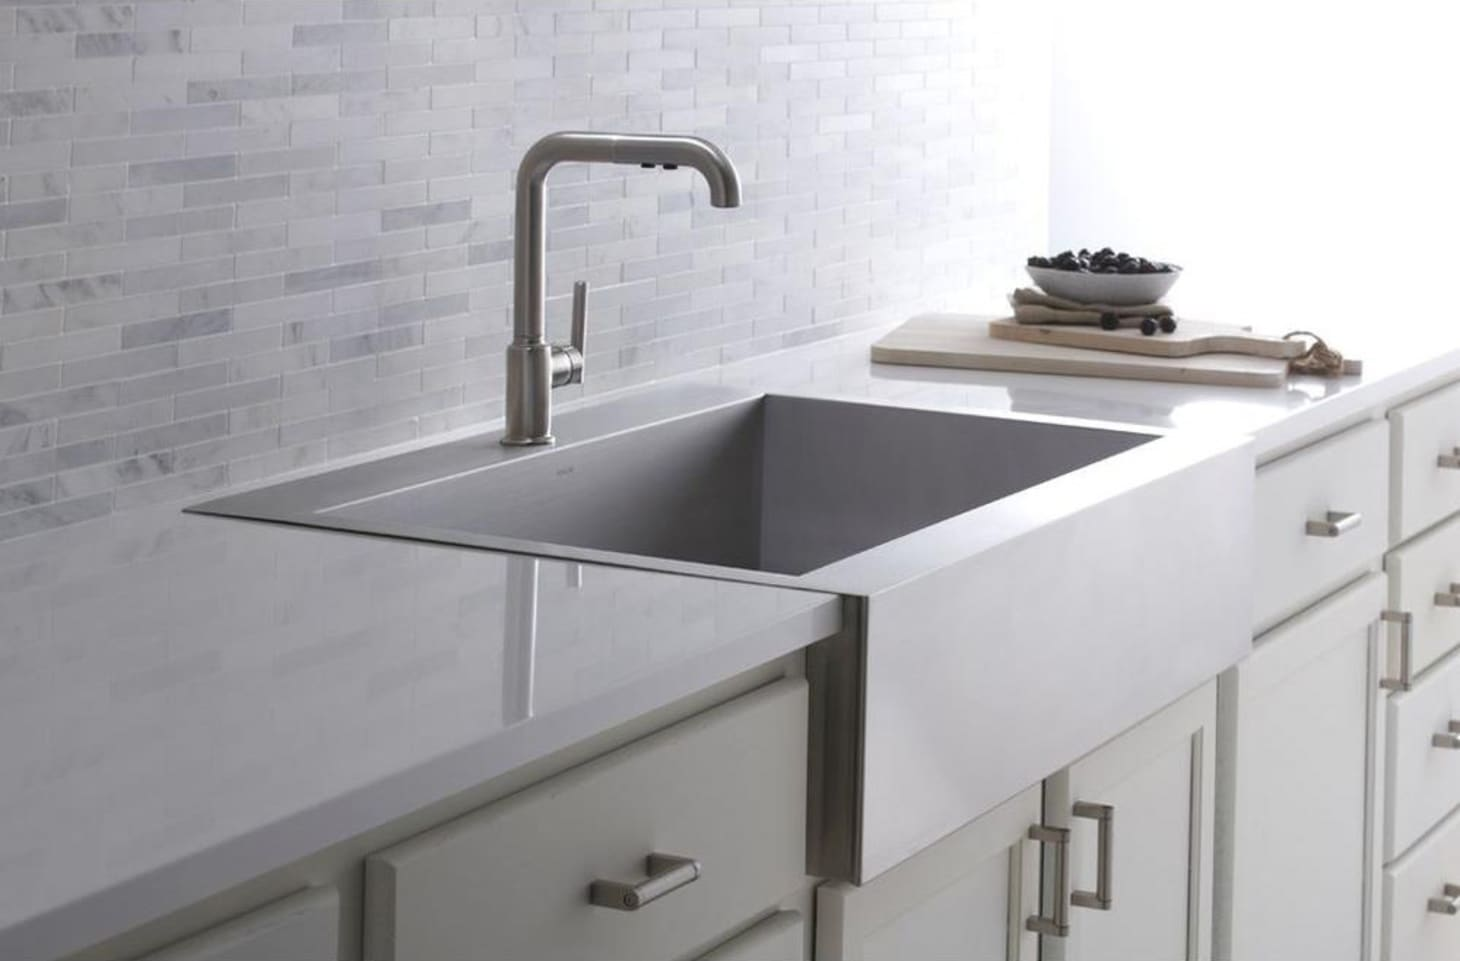 Apron Front Farmhouse Sinks: Our Best, Budget Picks ...